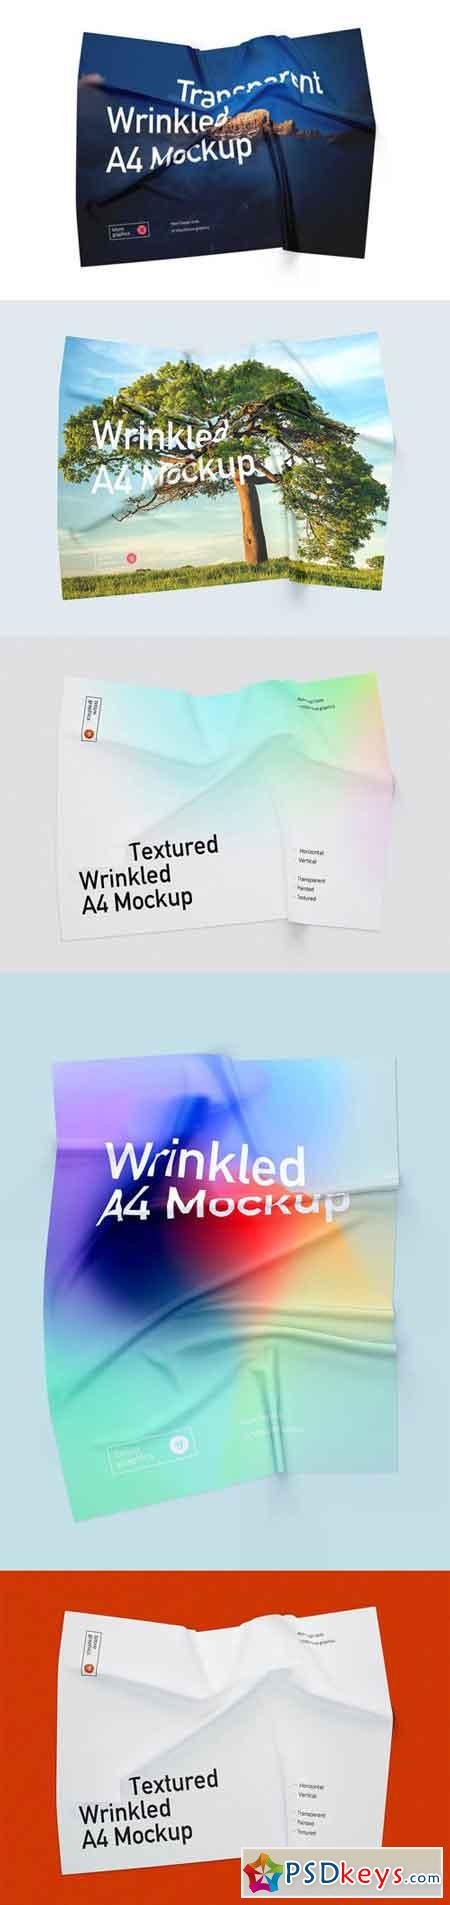 Wrinkled A4 Mockup in PSD